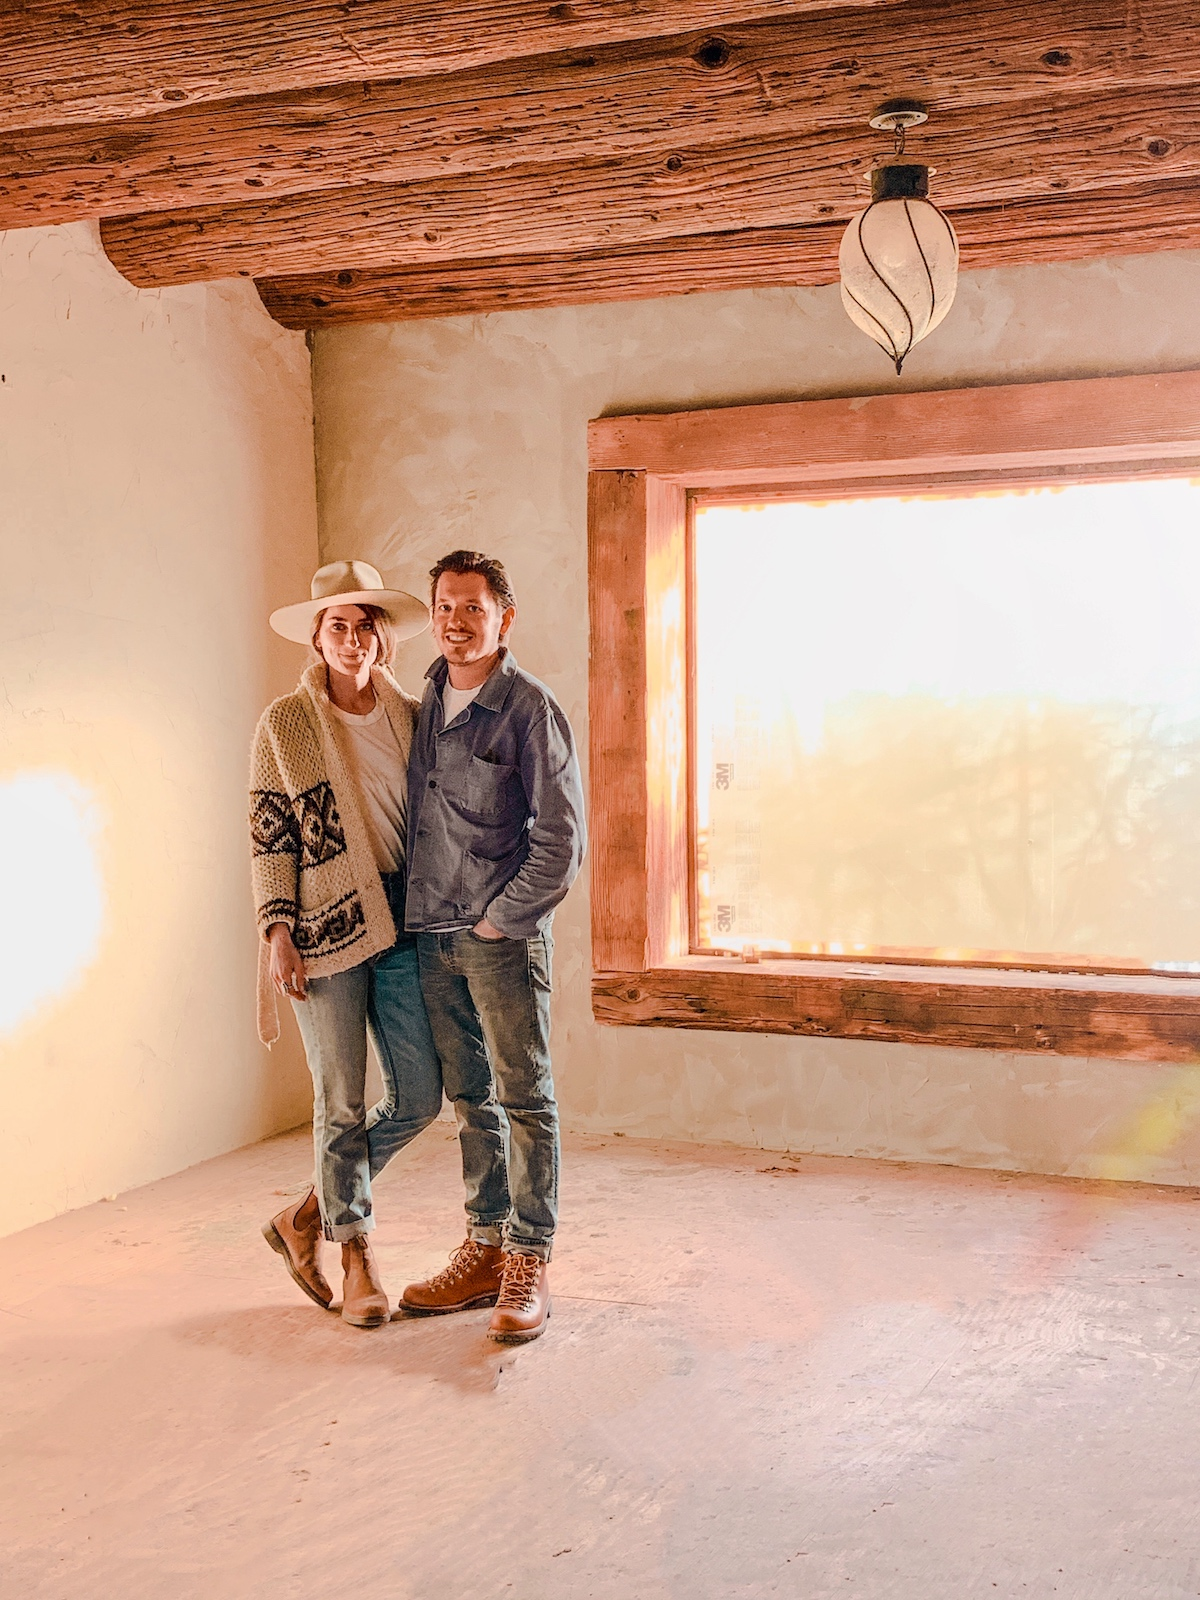 Sara and Rich stand in an empty room being renovated at the Joshua Tree House